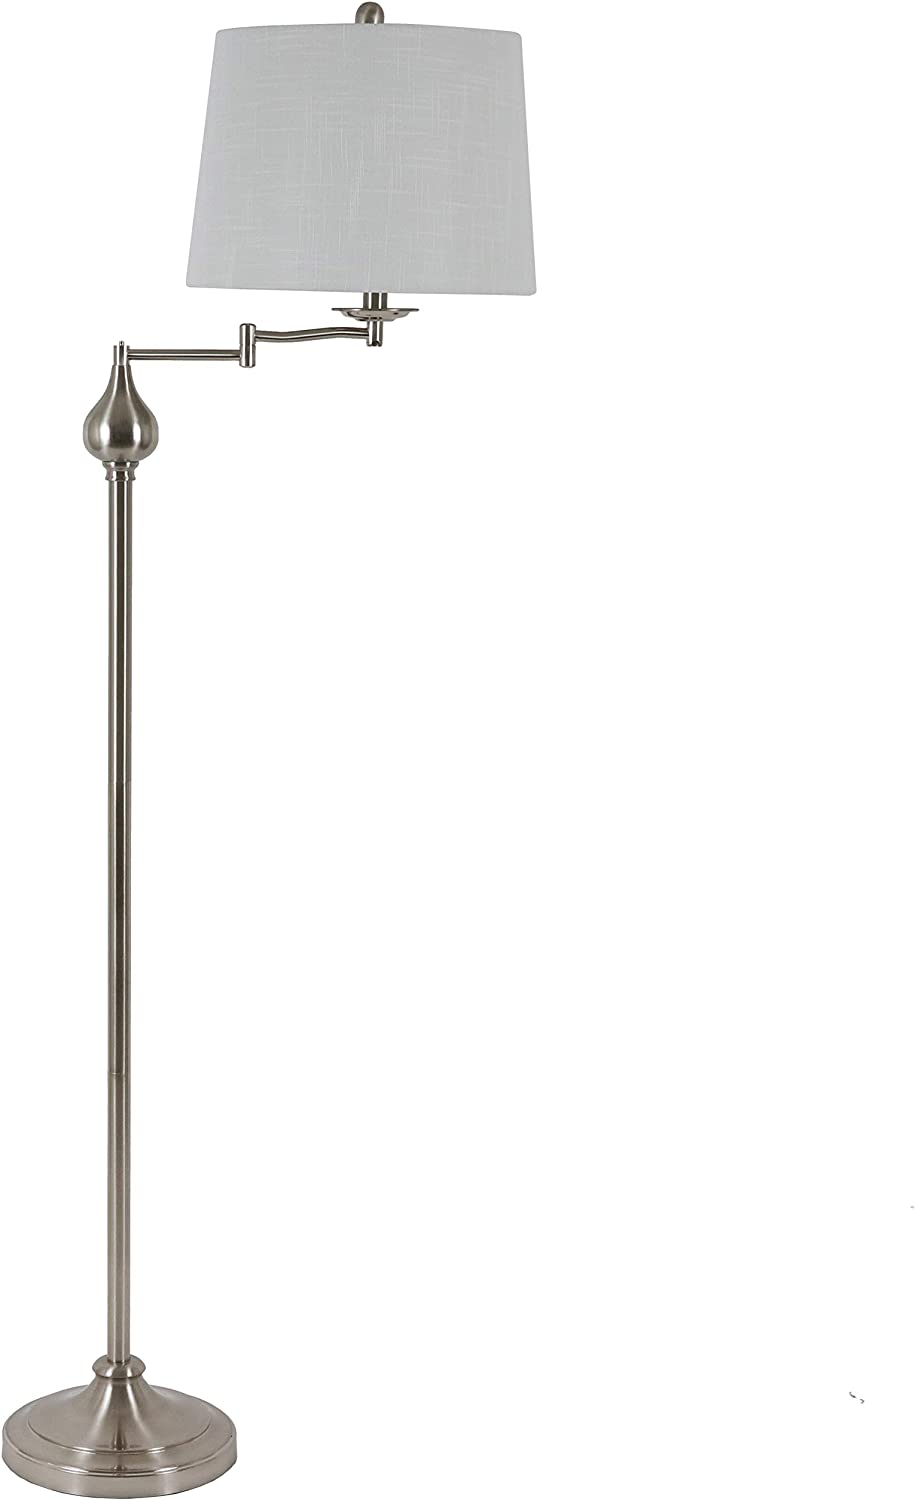 Decor Therapy Tina Floor Lamp with Swing Arm and Ball Accent, Brushed Steel